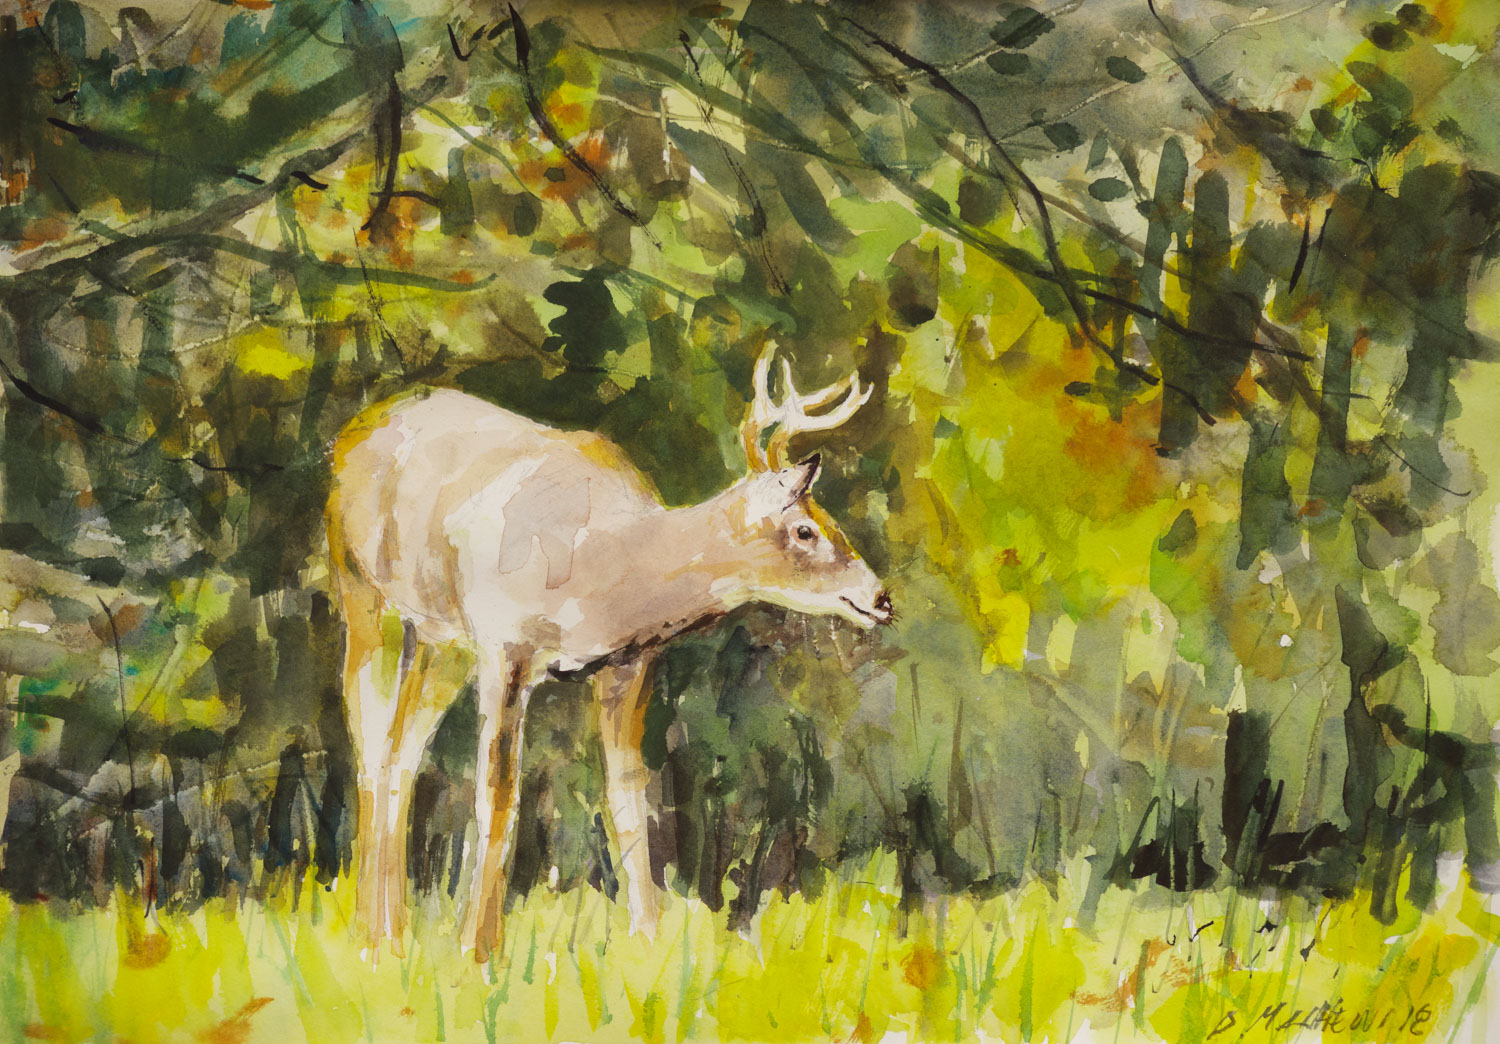 The Young Buck, Frick Park, Pittsburgh